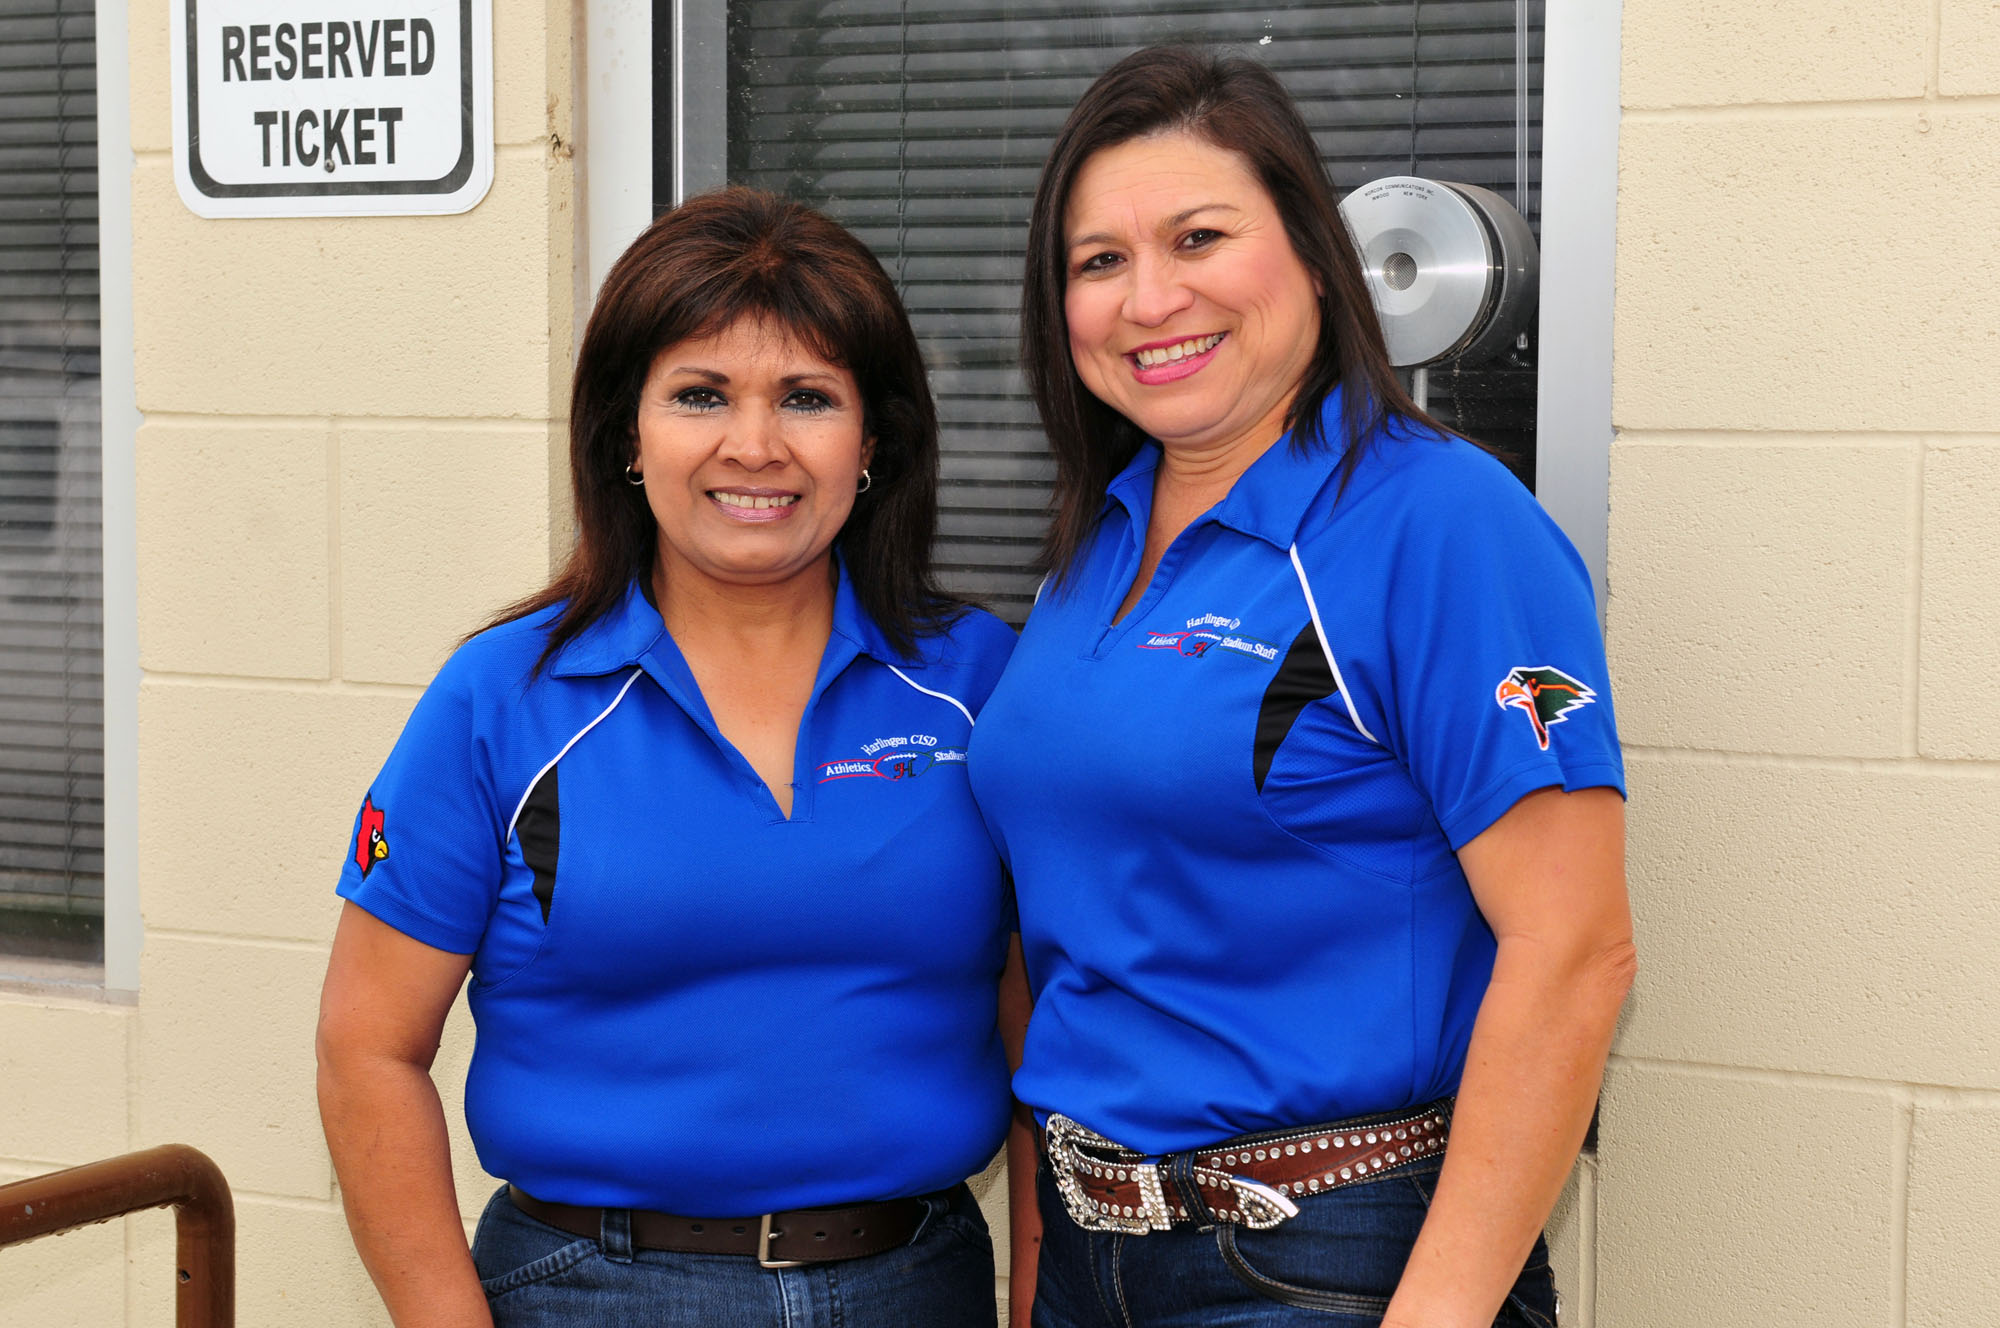 People of the Week: Lugo and Munoz support students inside and outside the classroom